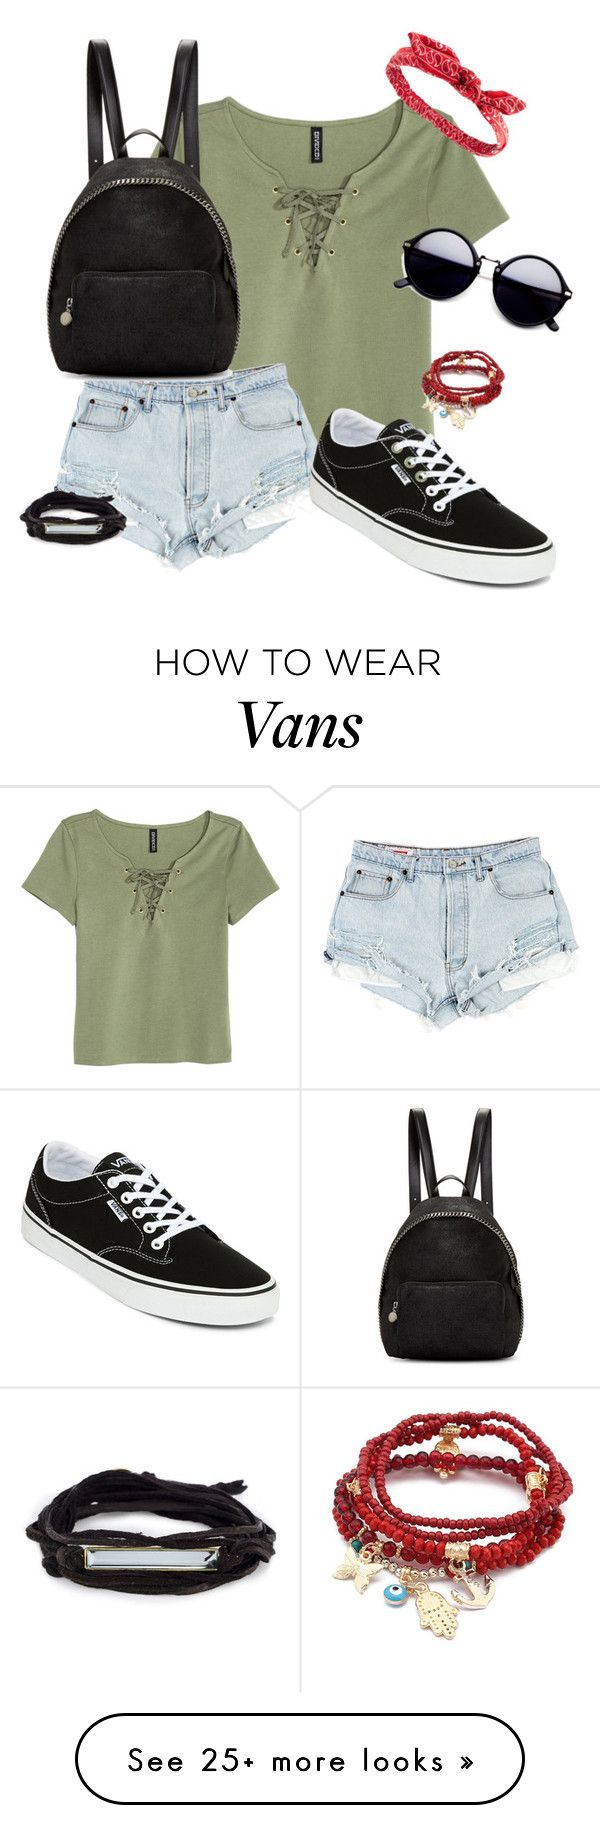 """""""Summer Hangout"""" by maxine128 on Polyvore featuring H&M, Vans, STELLA McCARTNEY, Charlotte Russe and Chicnova Fashion"""